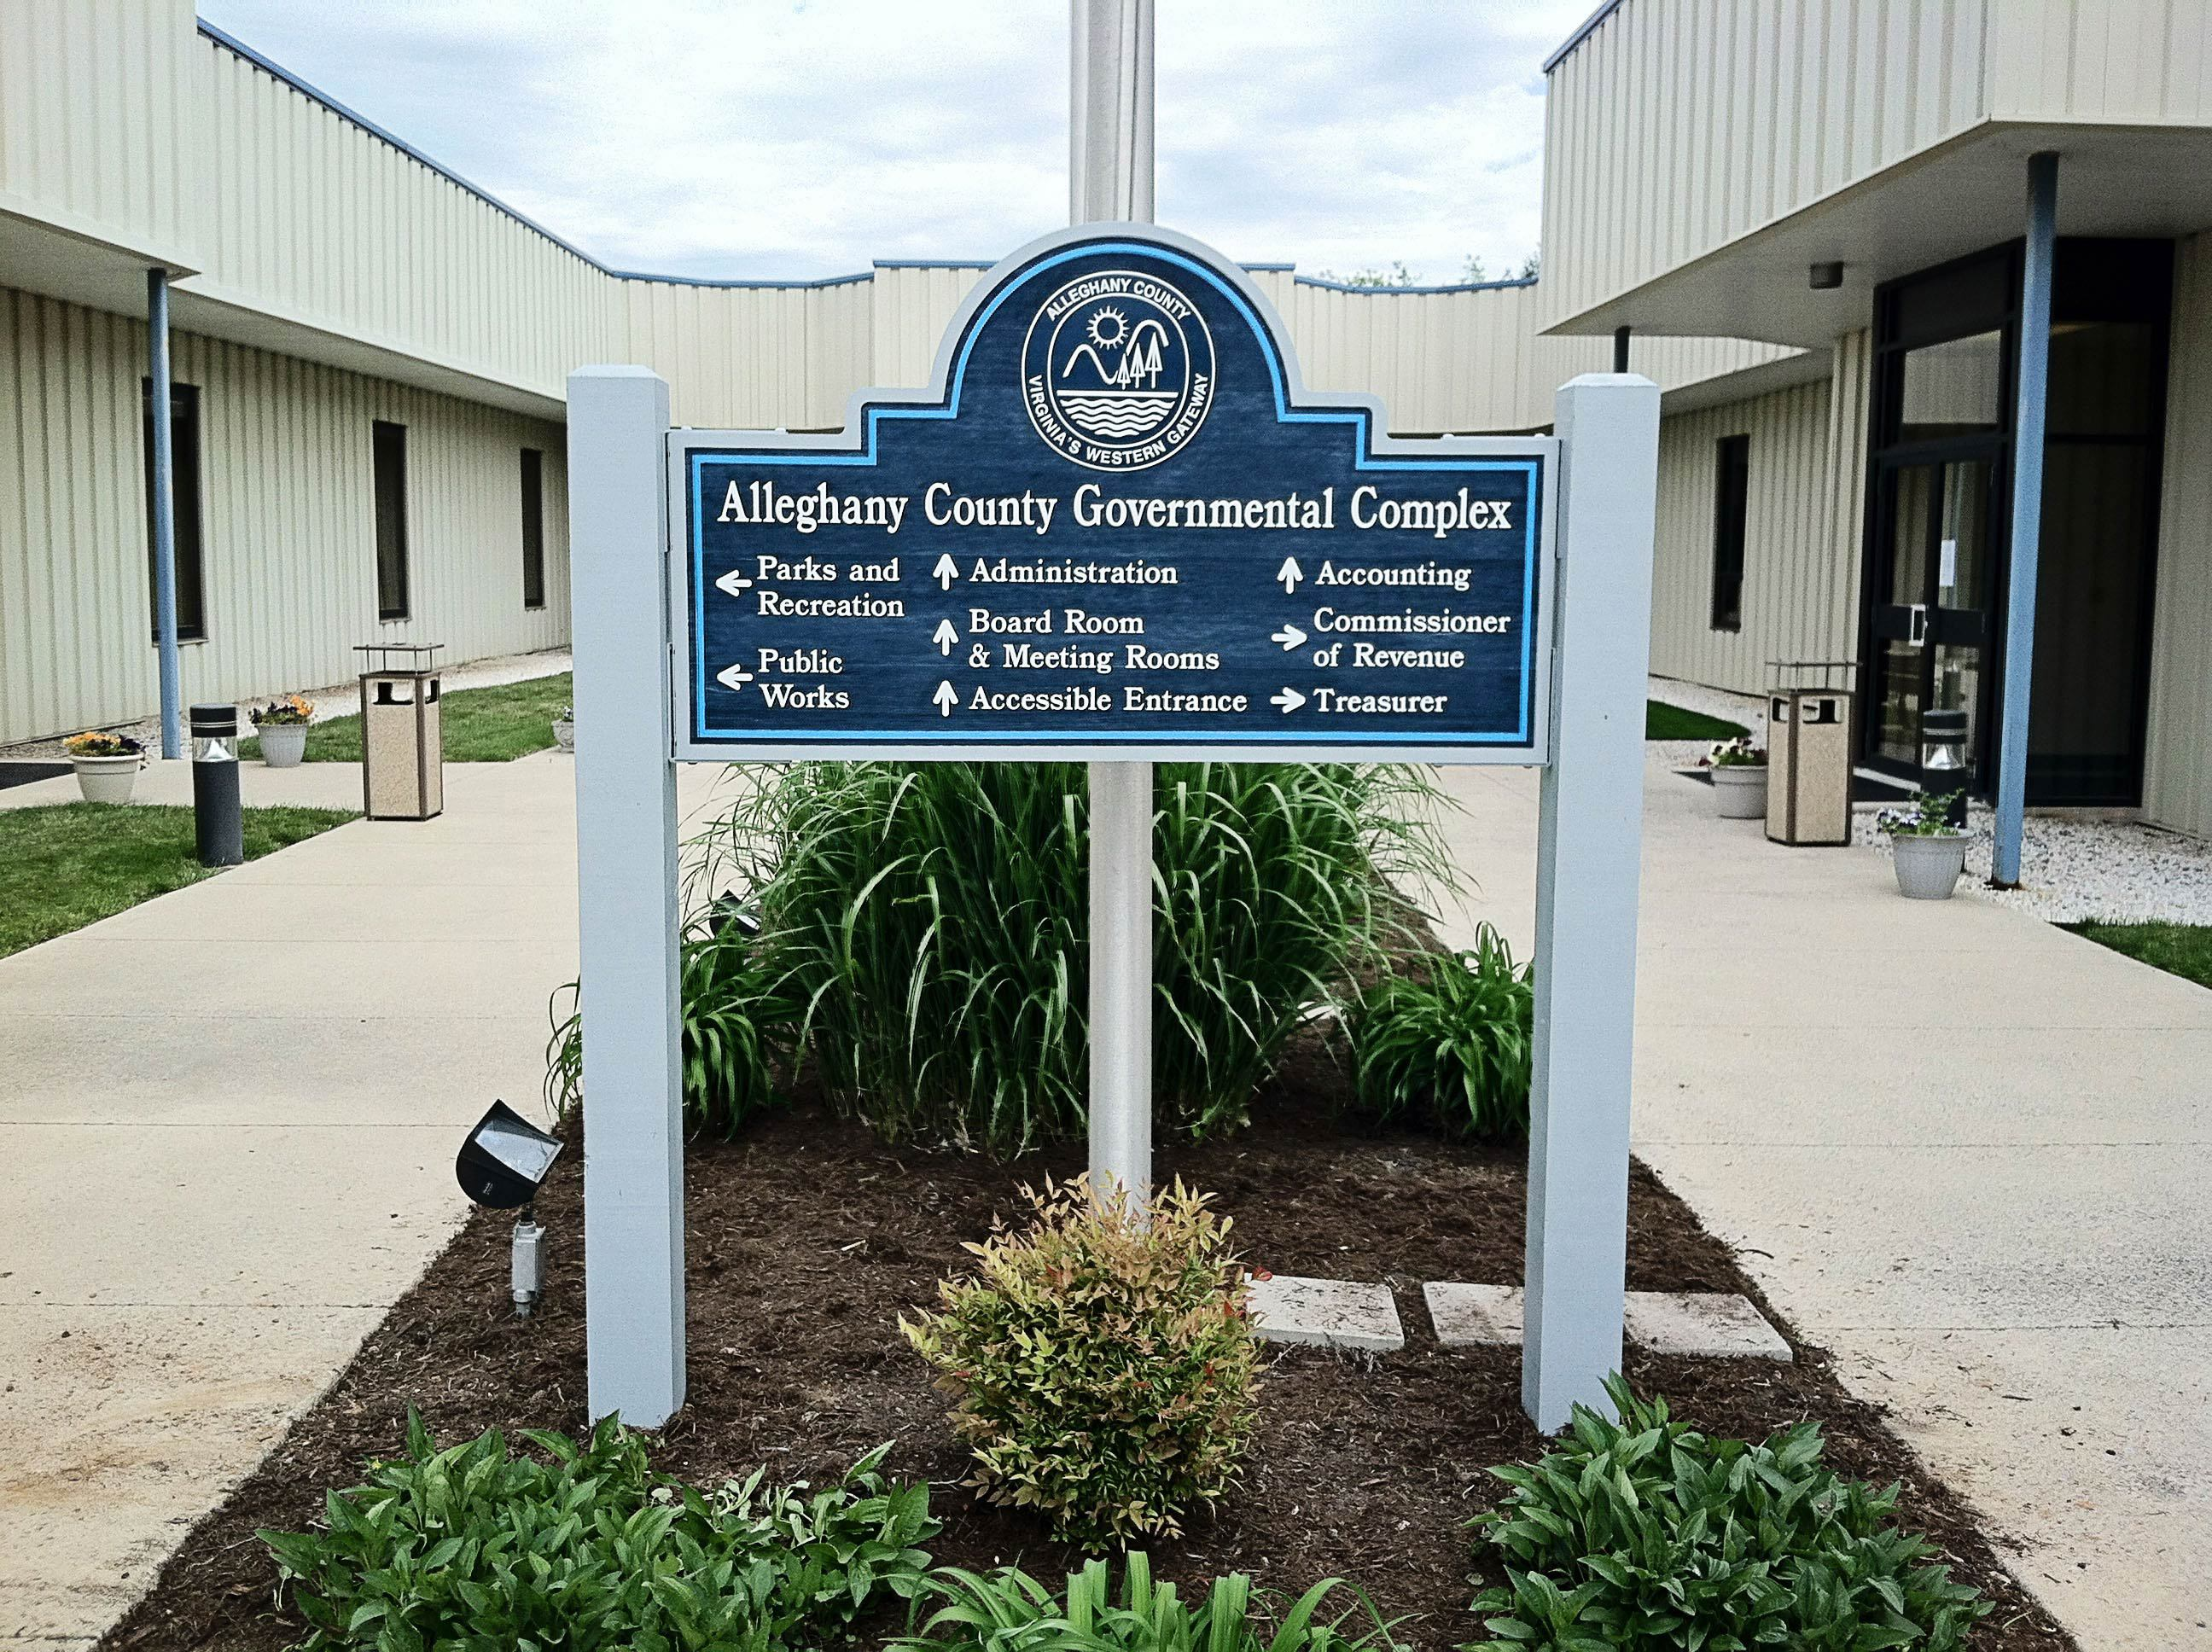 Custom-made sign of a governmental complex in Covington, VA